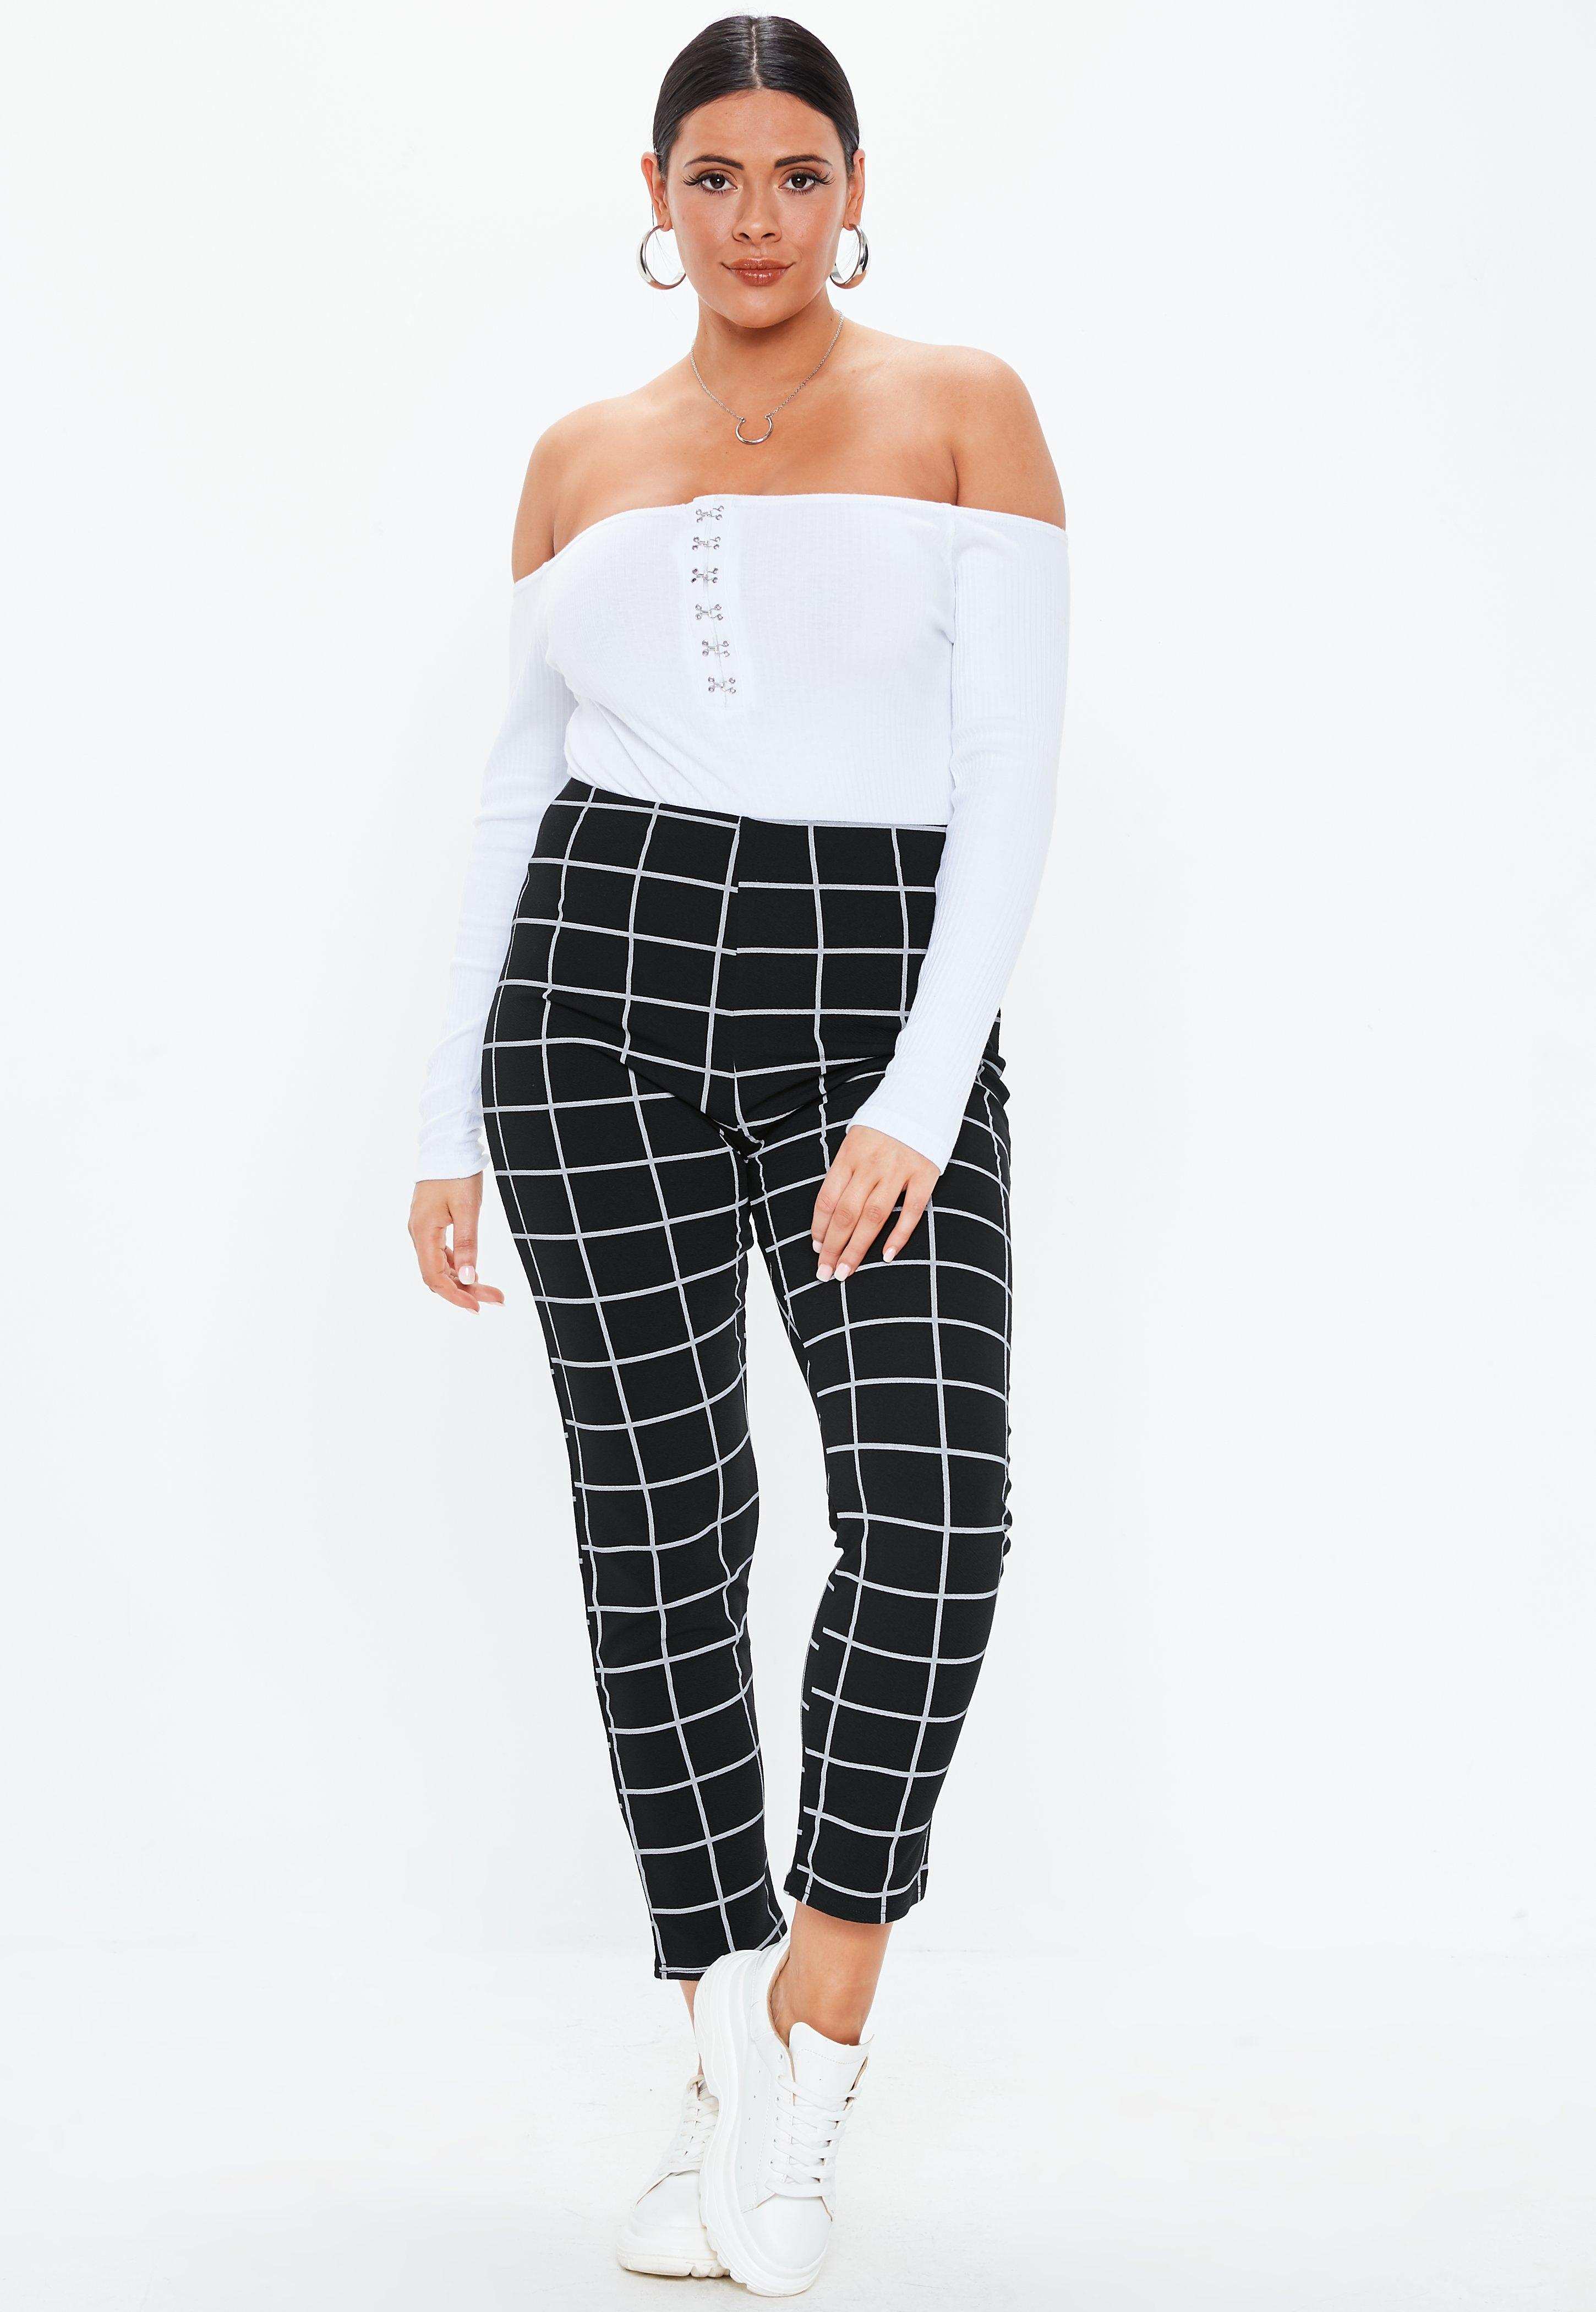 ac9e3bb39 Plus Size Clothing   Plus Size Womens Fashion - Missguided+